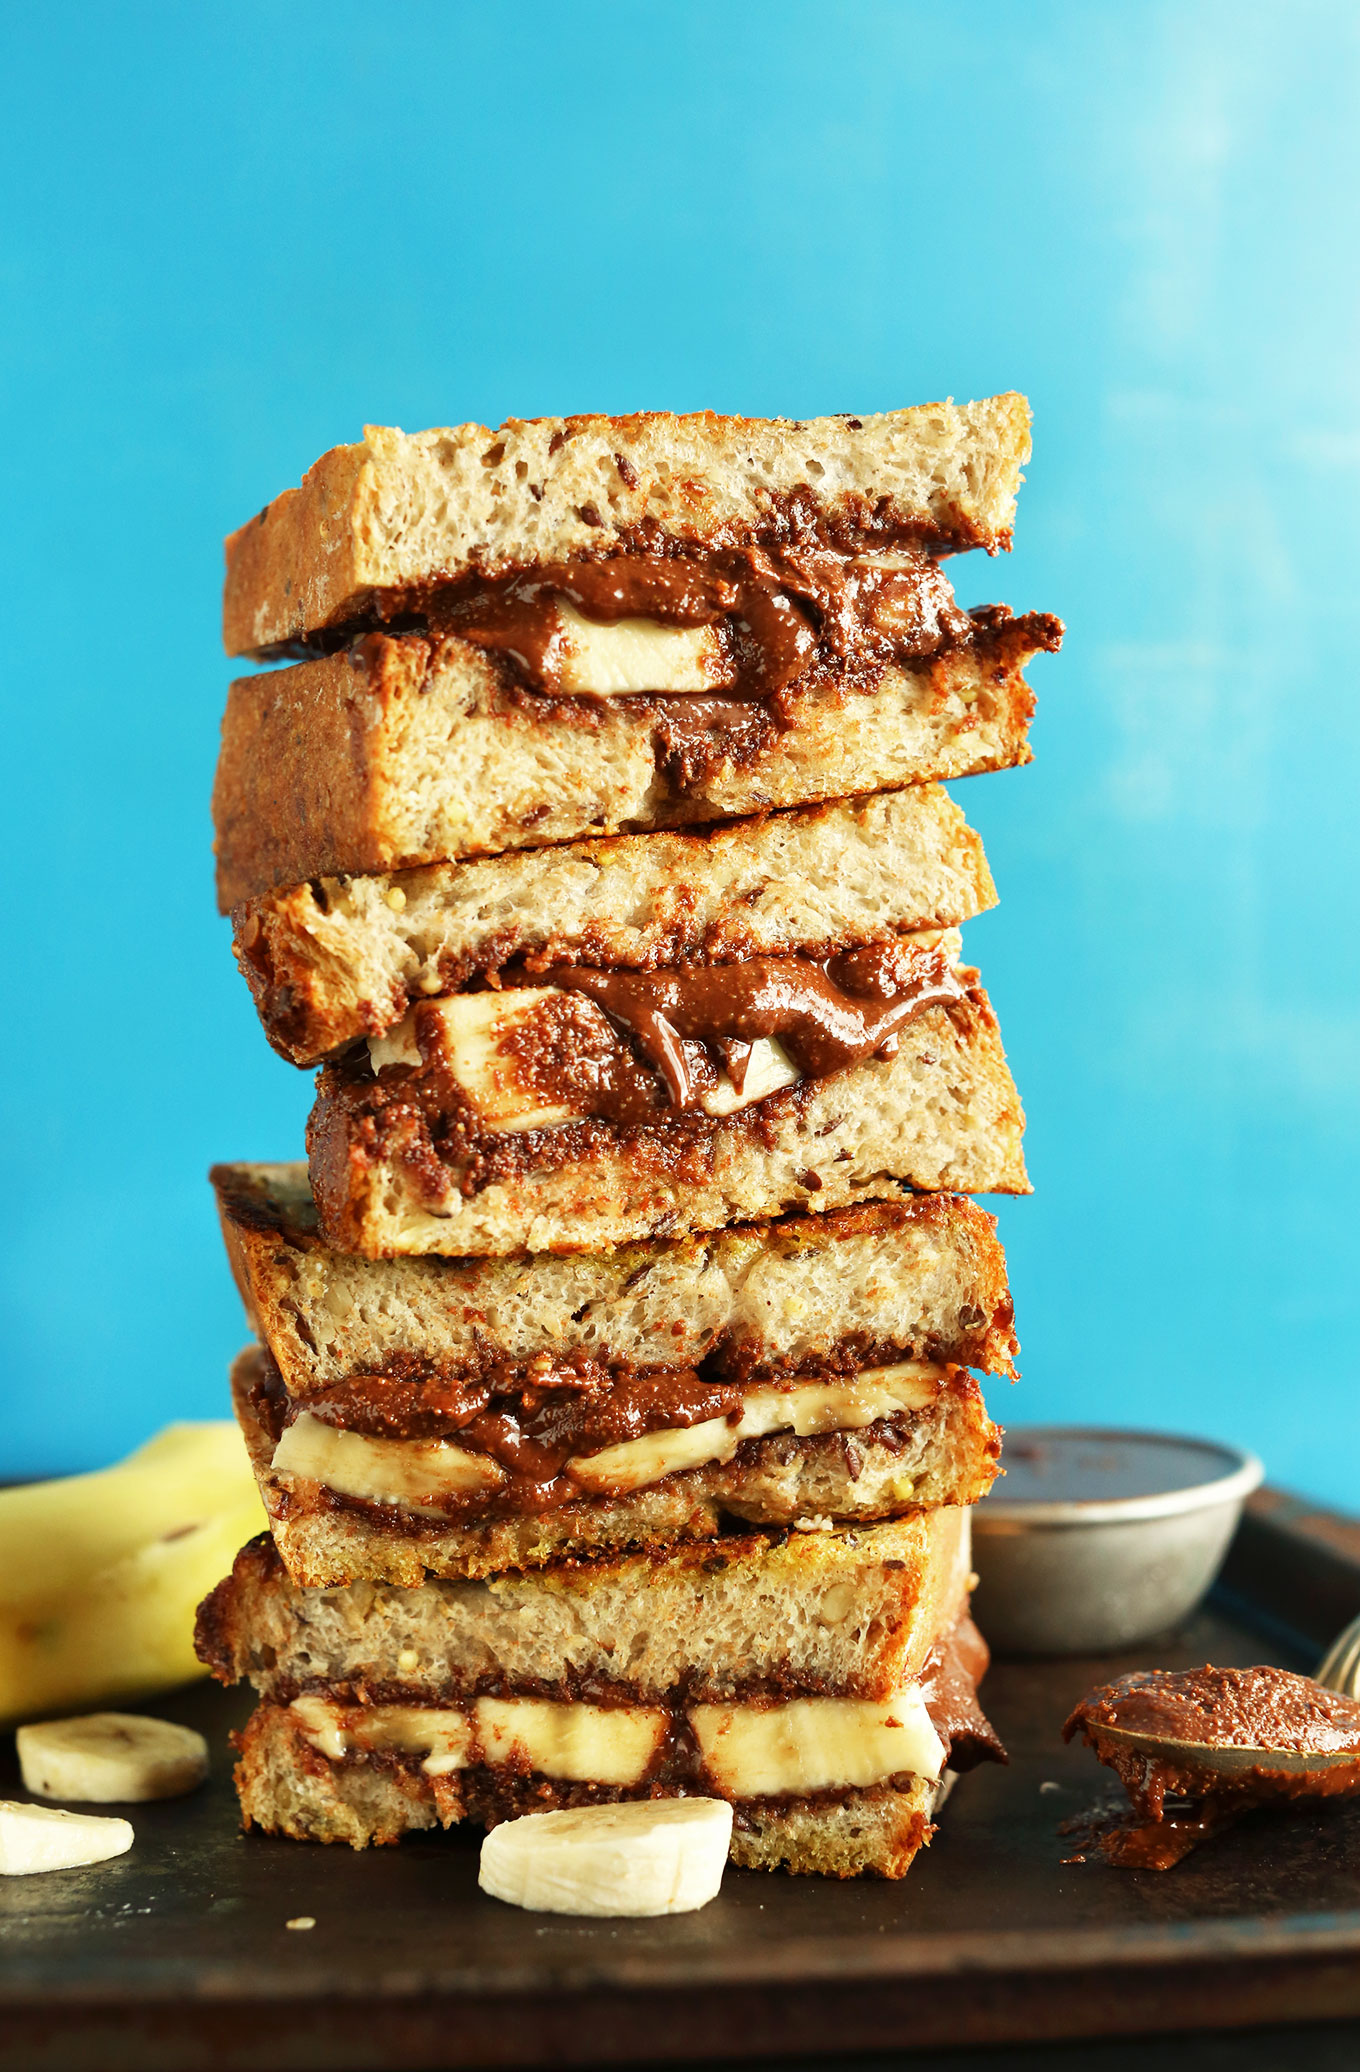 Stack of delicious vegan Grilled Banana Nutella Sandwiches